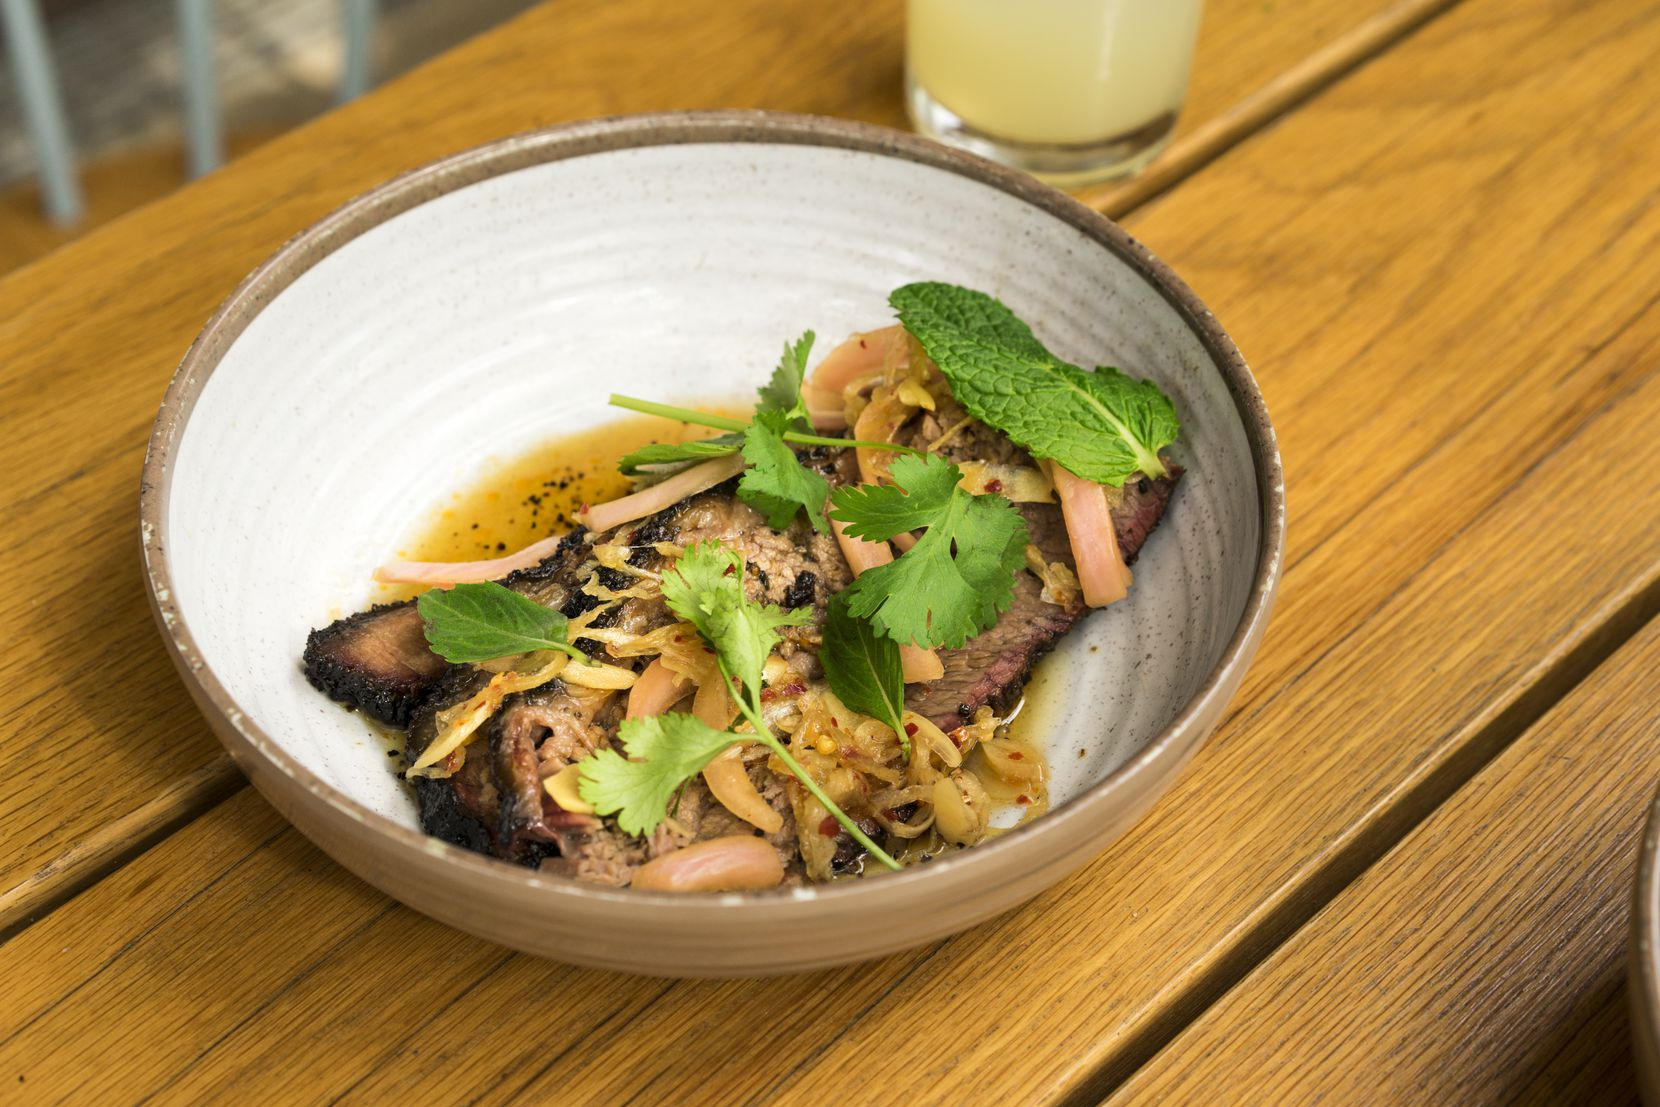 Loro melds Japanese fare with classic Lone Star barbecue.